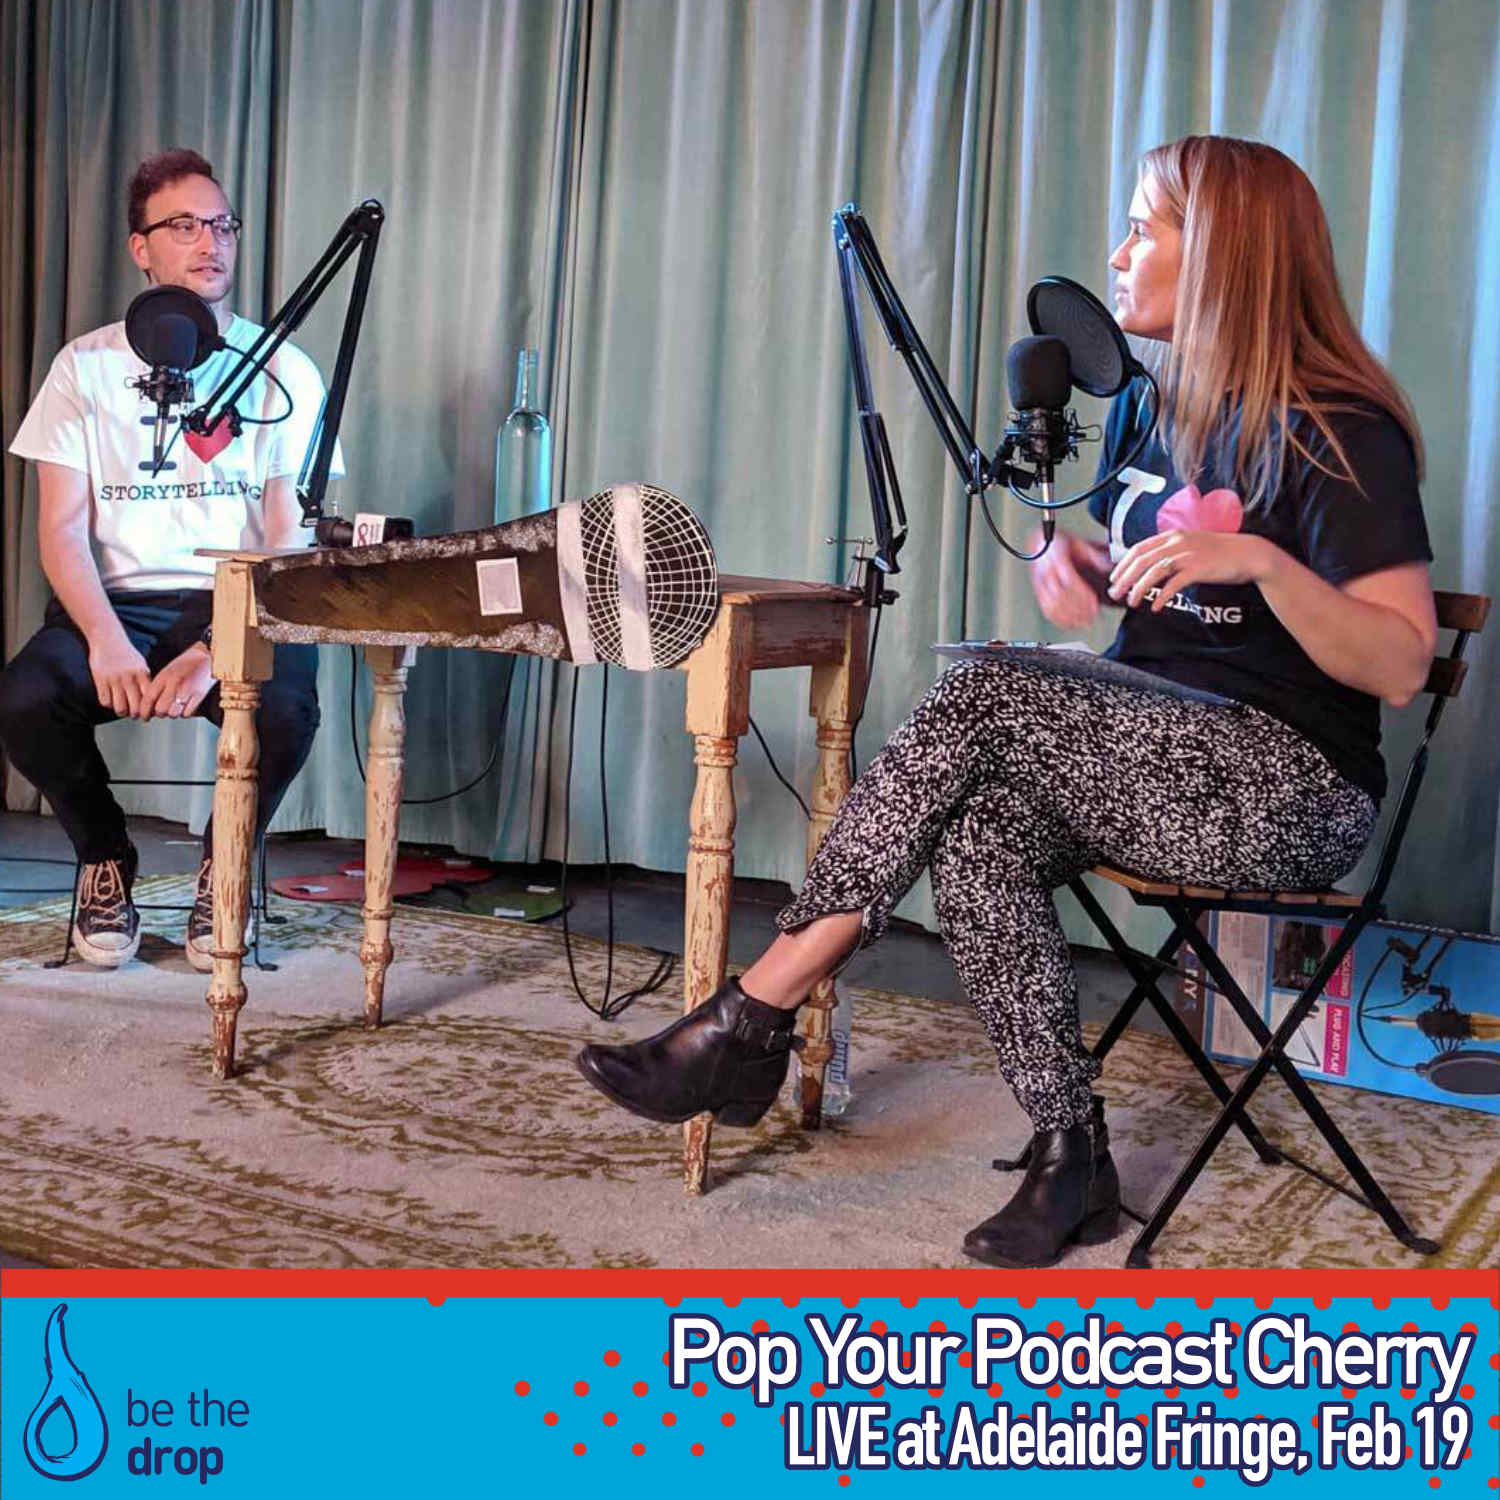 Pop Your Podcast Cherry